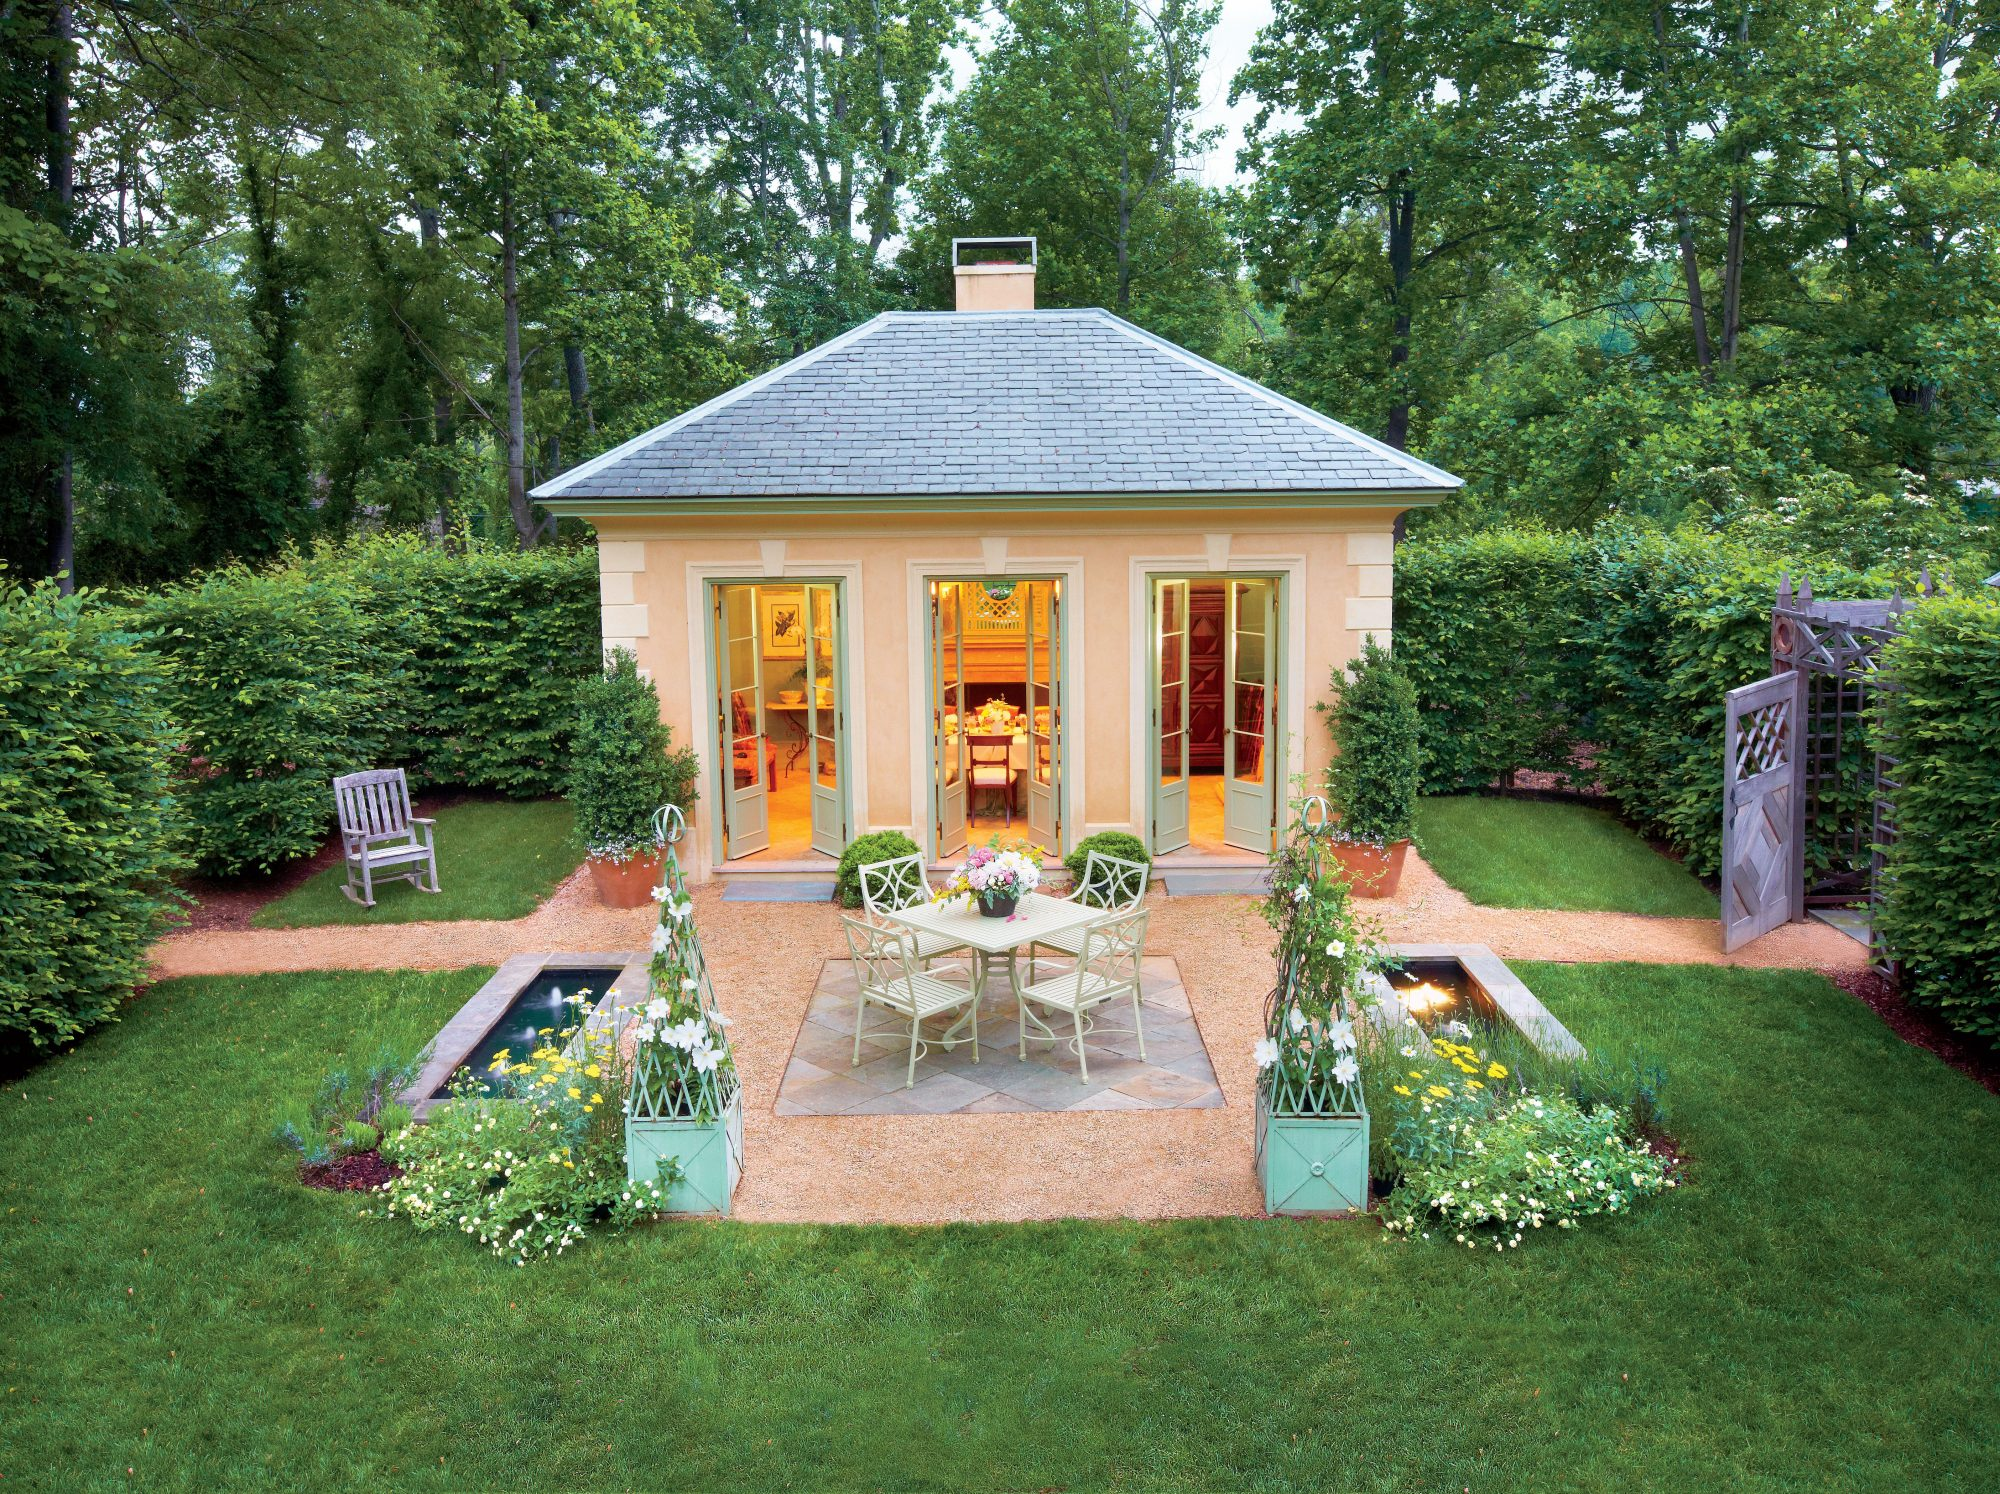 Classical Garden Pavilion -   19 Awesome Courtyards Ideas